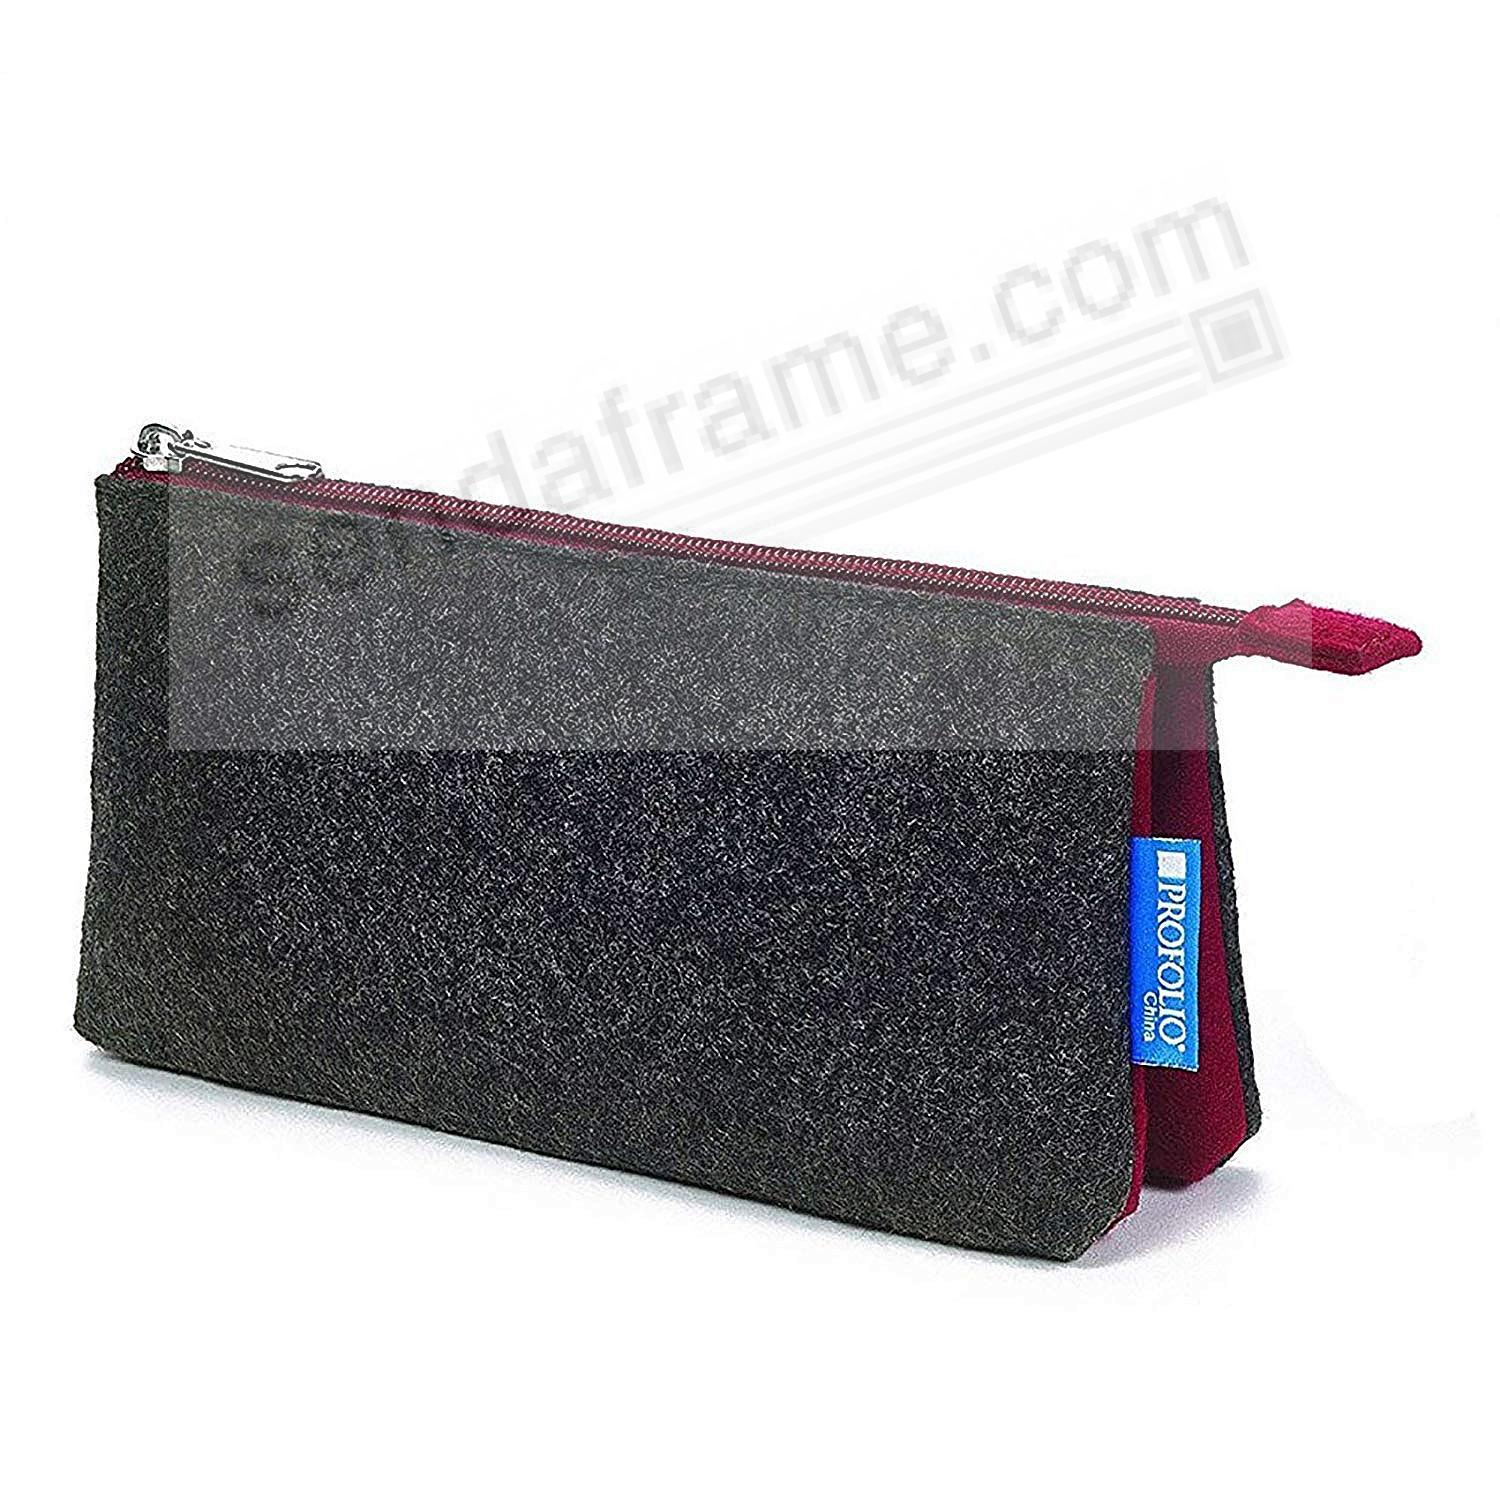 The NEW PROFOLIO MIDTOWN POUCH by Itoya - CHARCOAL/Maroon (5x9-Large)